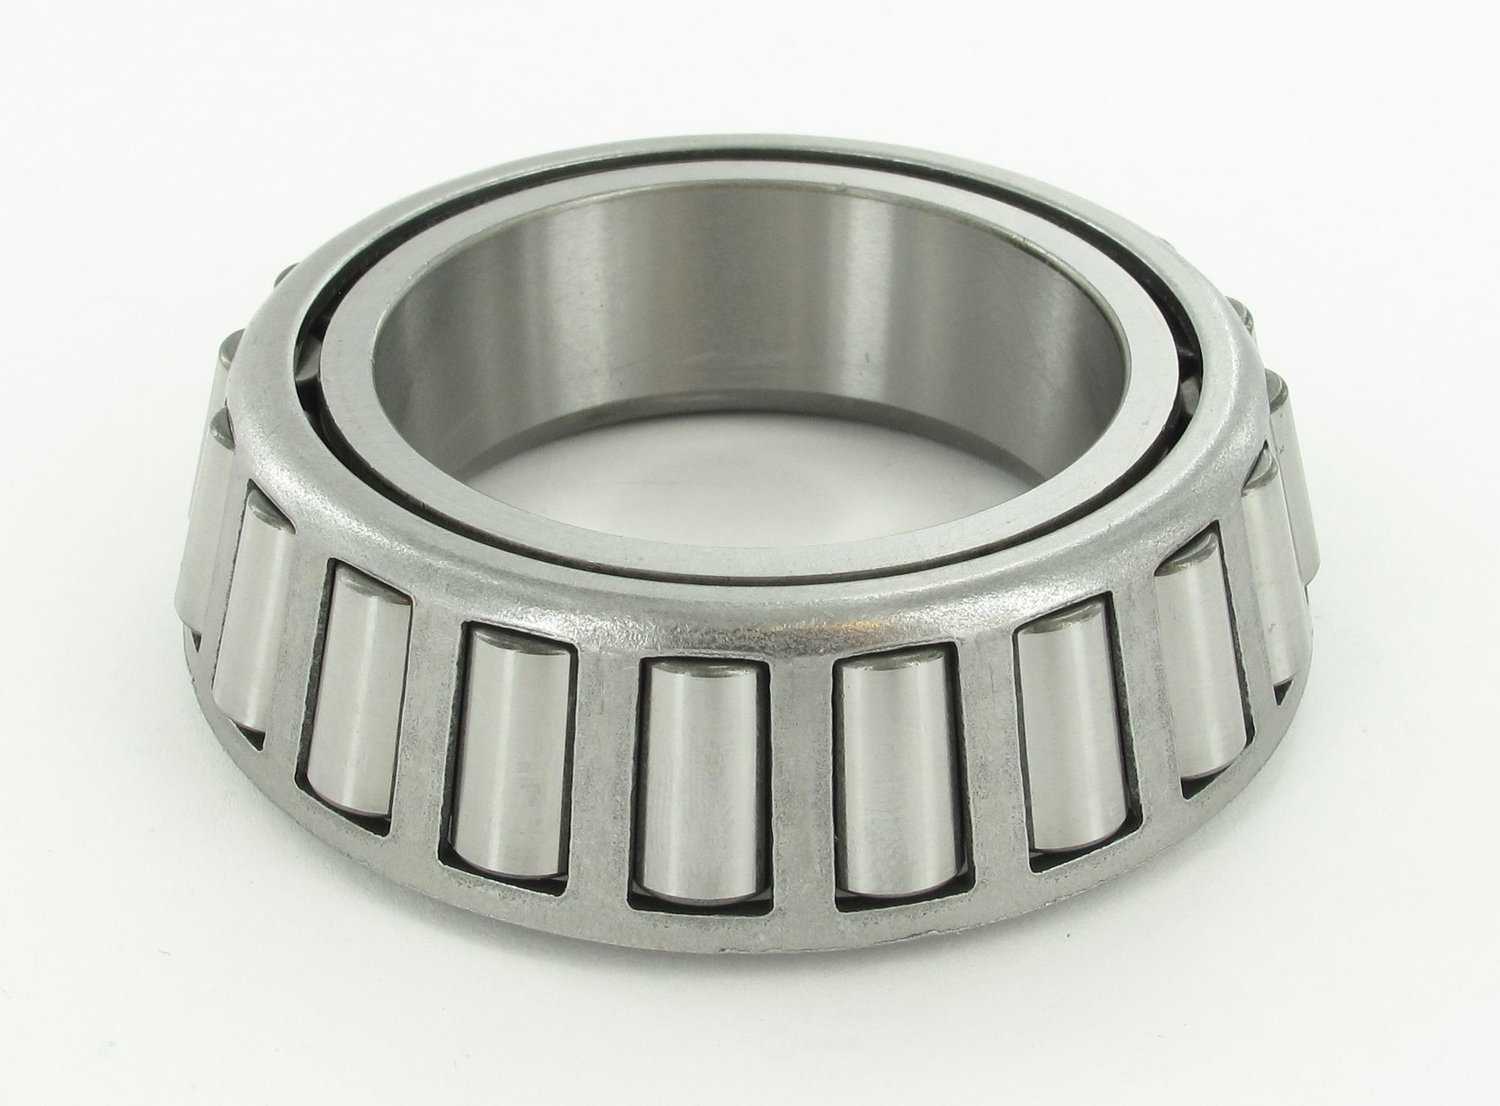 SKF (CHICAGO RAWHIDE) - Auto Trans Differential Bearing - SKF LM603049 VP